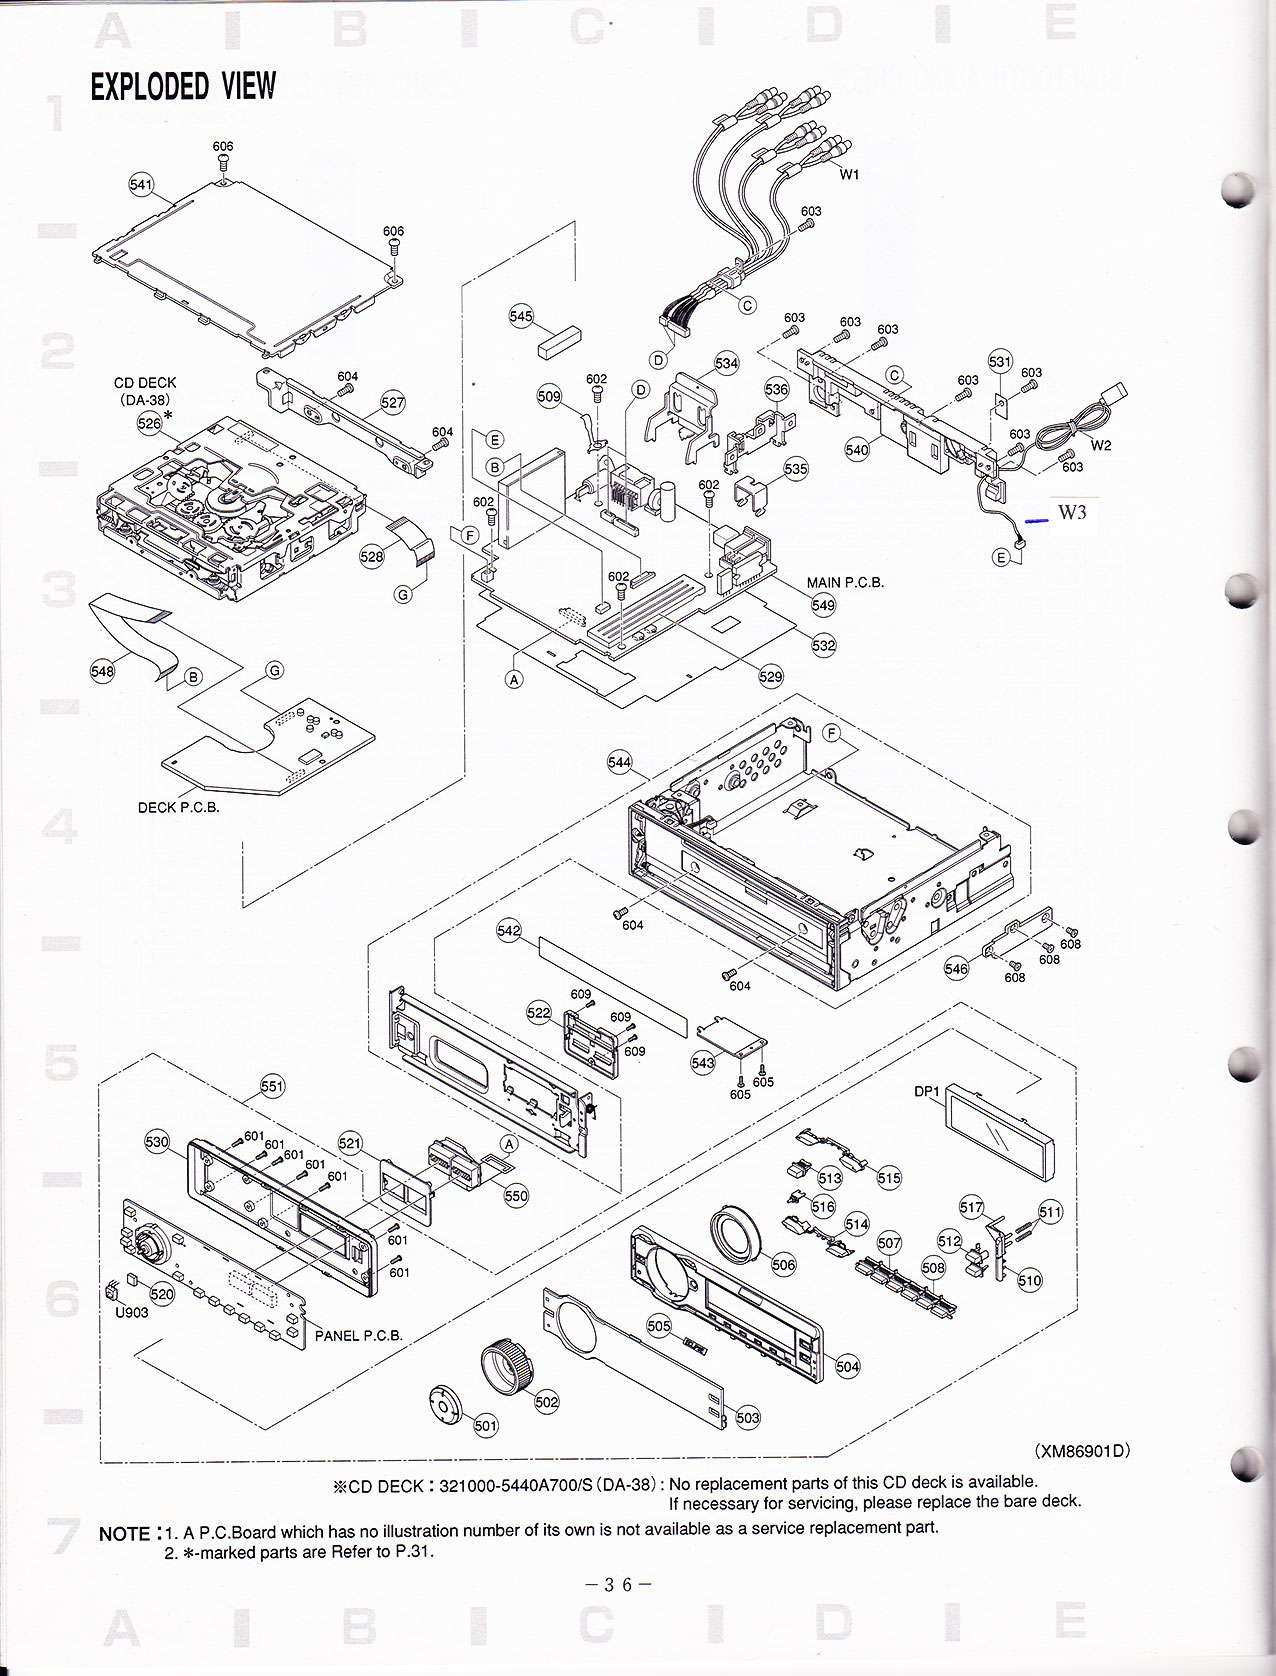 need service manual for Eclipse CD7200 MkII (component